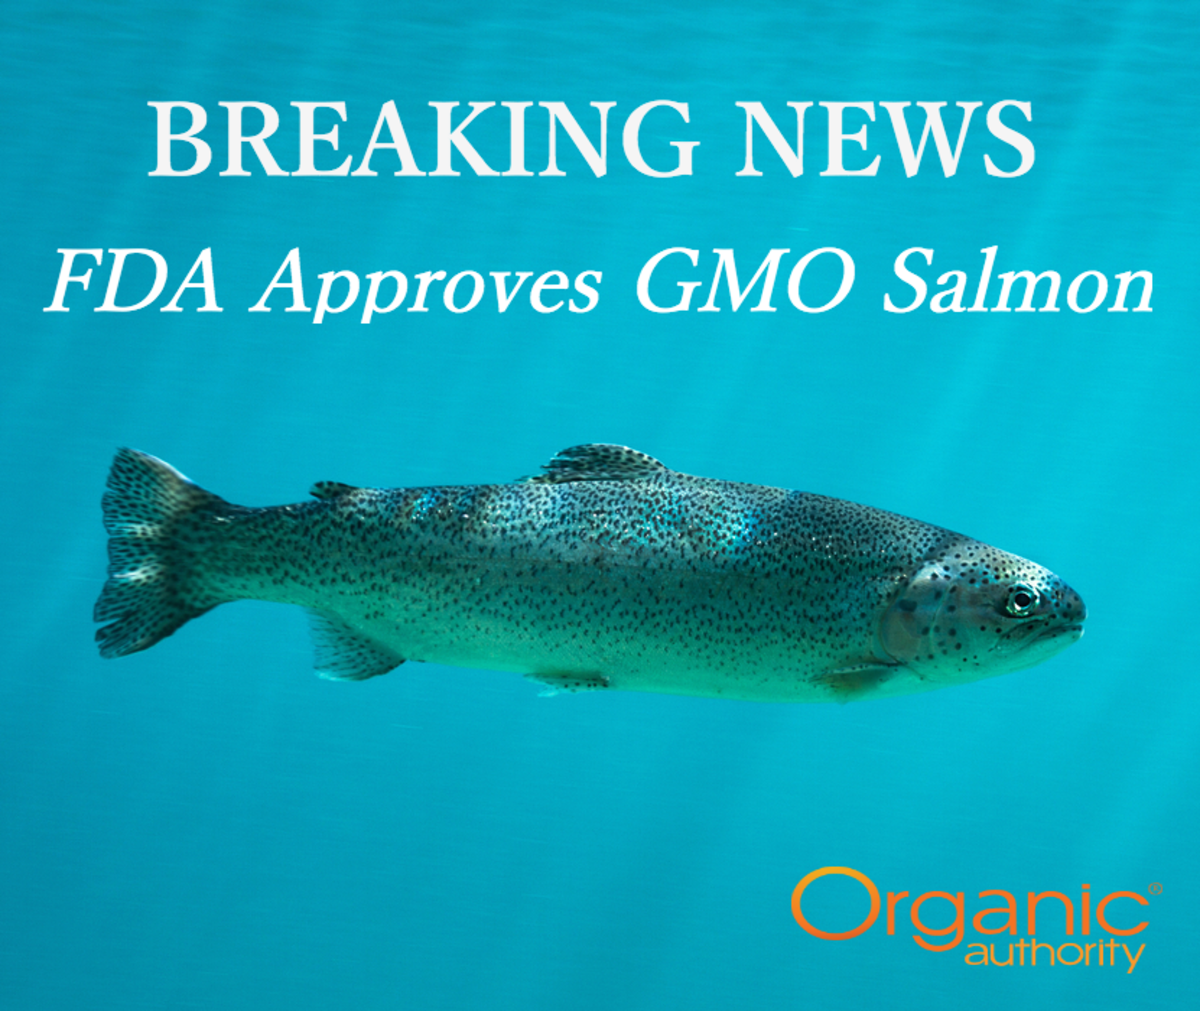 FDA Approves GMO Salmon, and You Won't Even Know You're Buying It